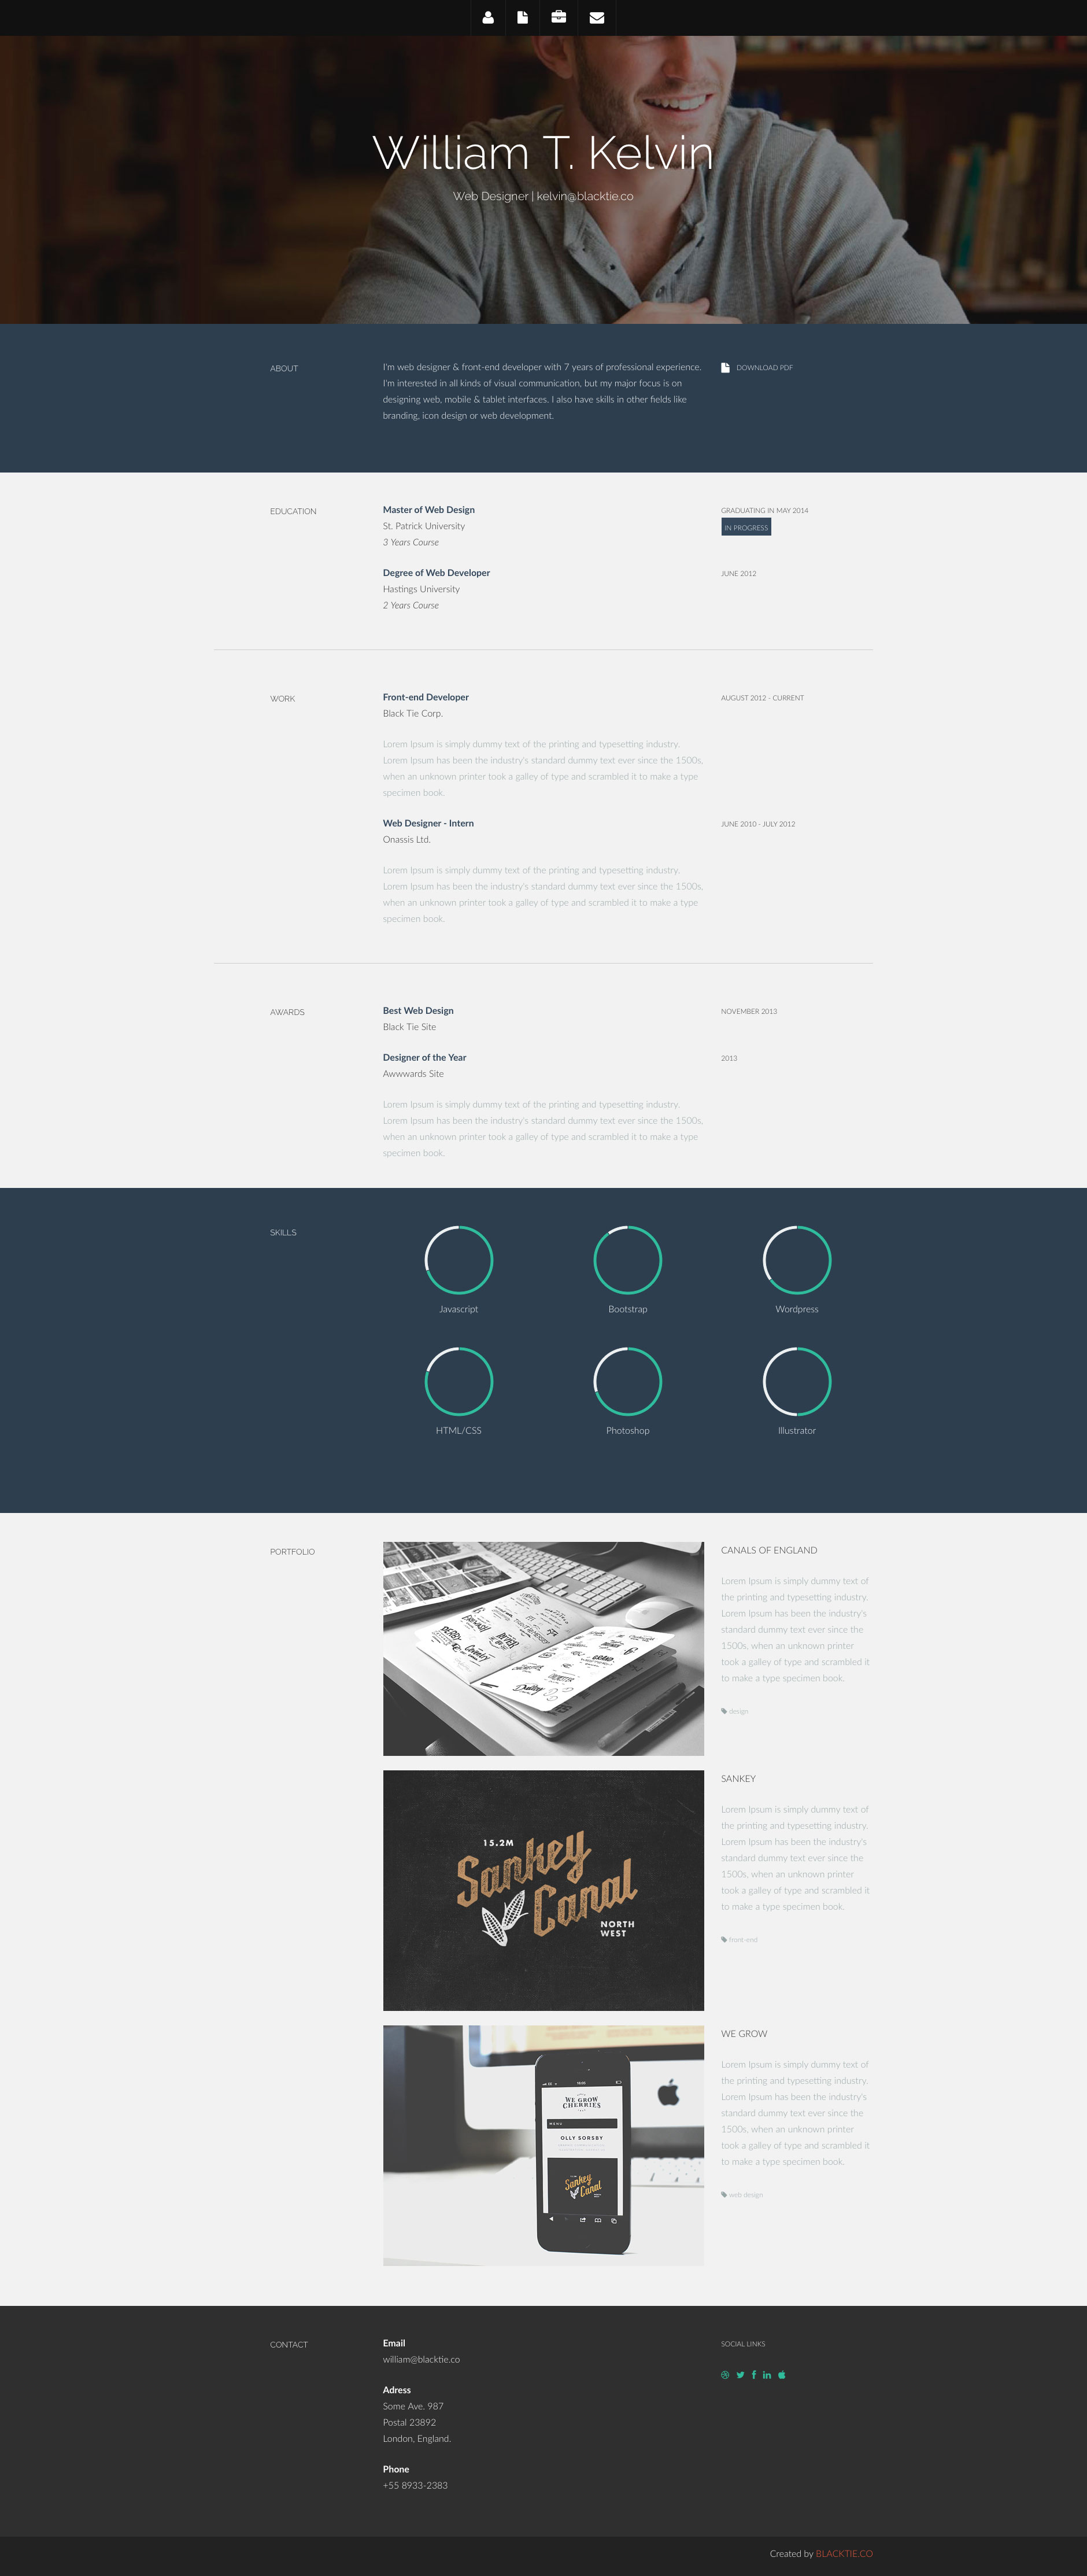 Kelvin is a free HTML5 Bootstrap Resume website template. It will help you impress more hiring managers, land more interviews, and get hired faster. Kelvin template is fully responsive and built on the popular Bootstrap 3.